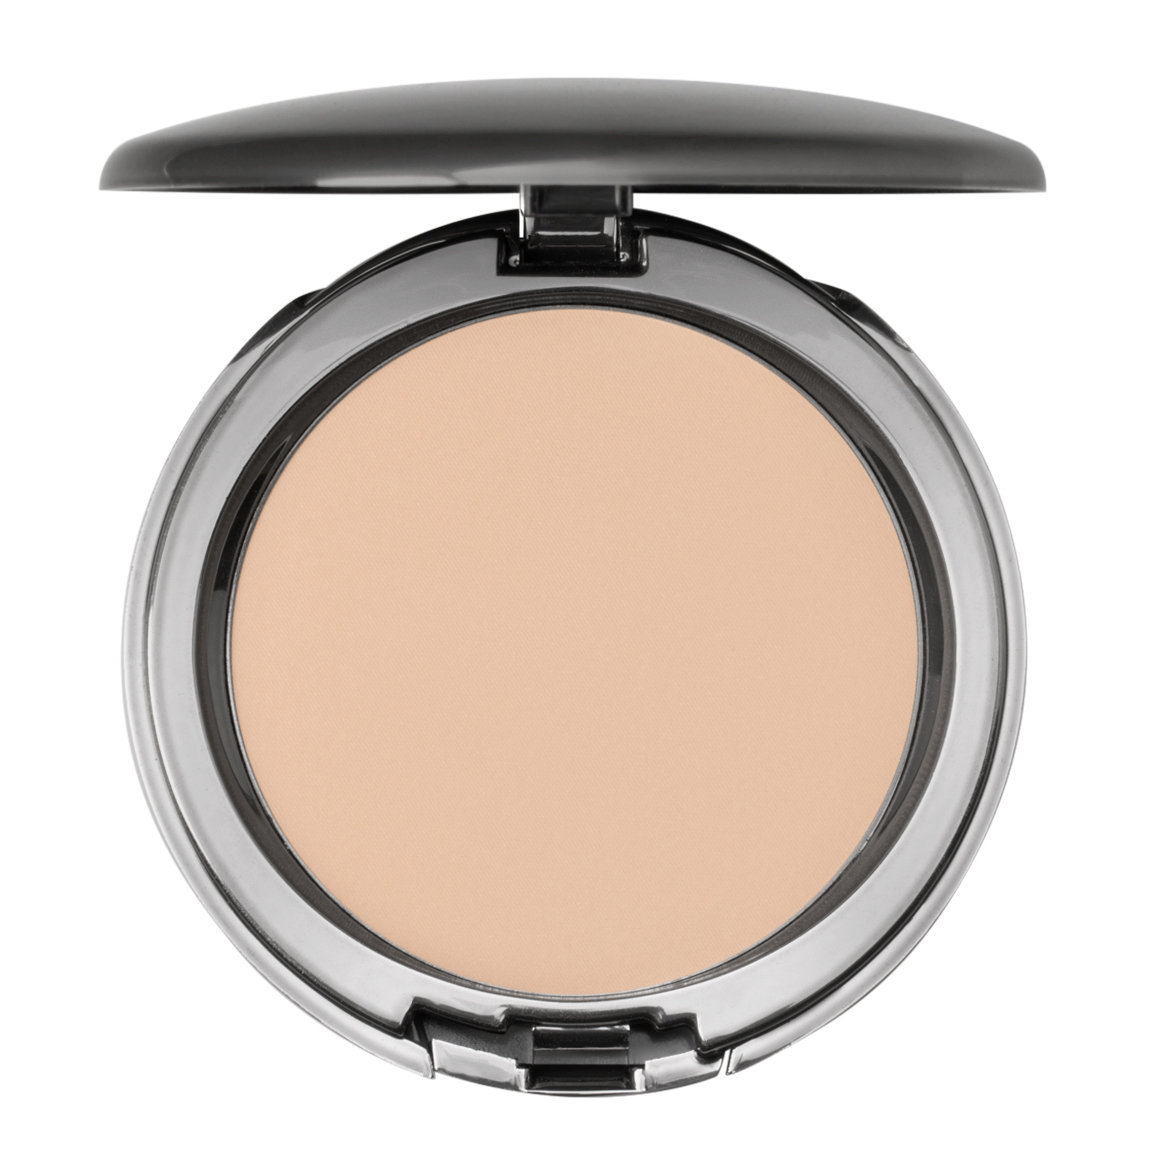 COVER | FX Perfect Pressed Setting Powder Light product swatch.